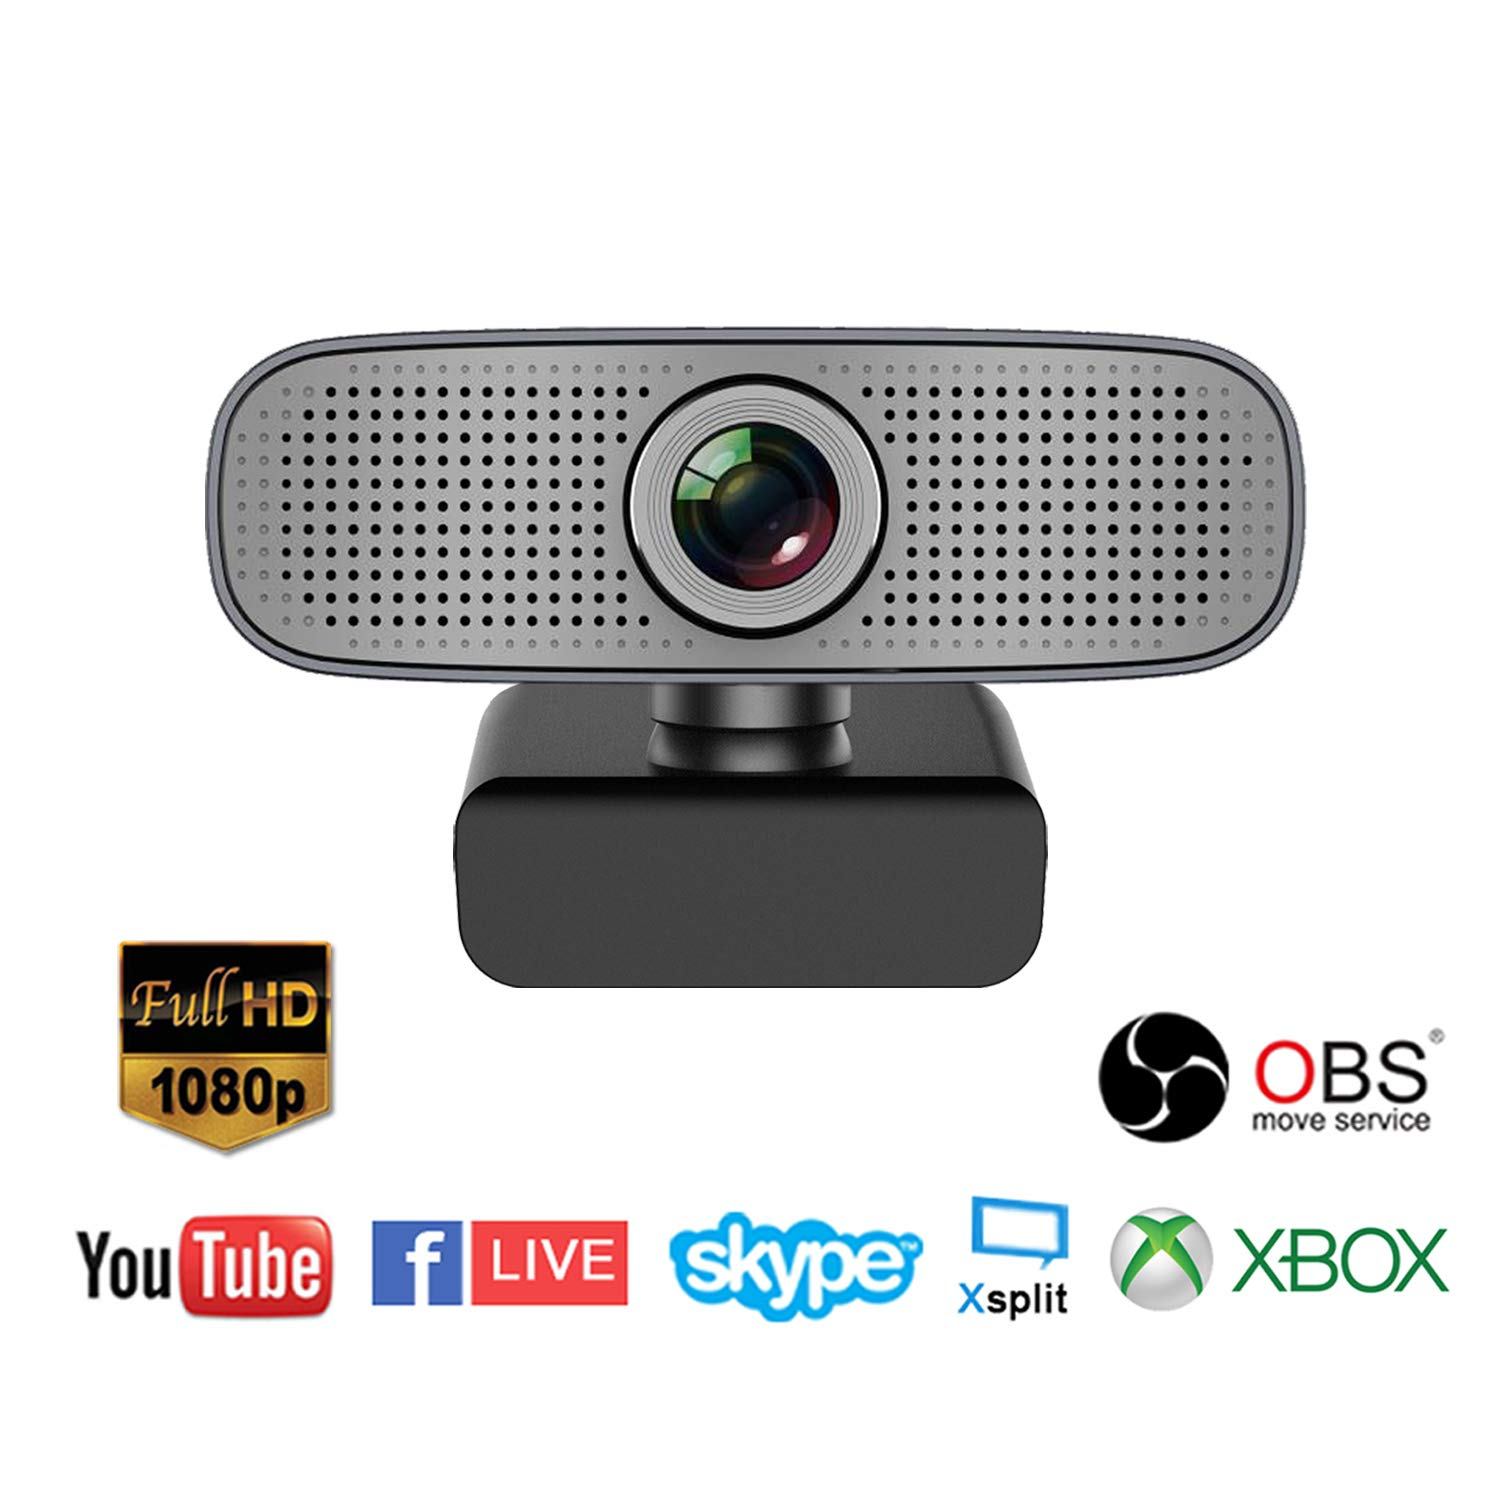 Spedal Full HD Webcam 1080p, Beauty Live Streaming Webcam, Computer Laptop  Camera for OBS Xbox XSplit Skype Facebook, Compatible for Mac OS Windows